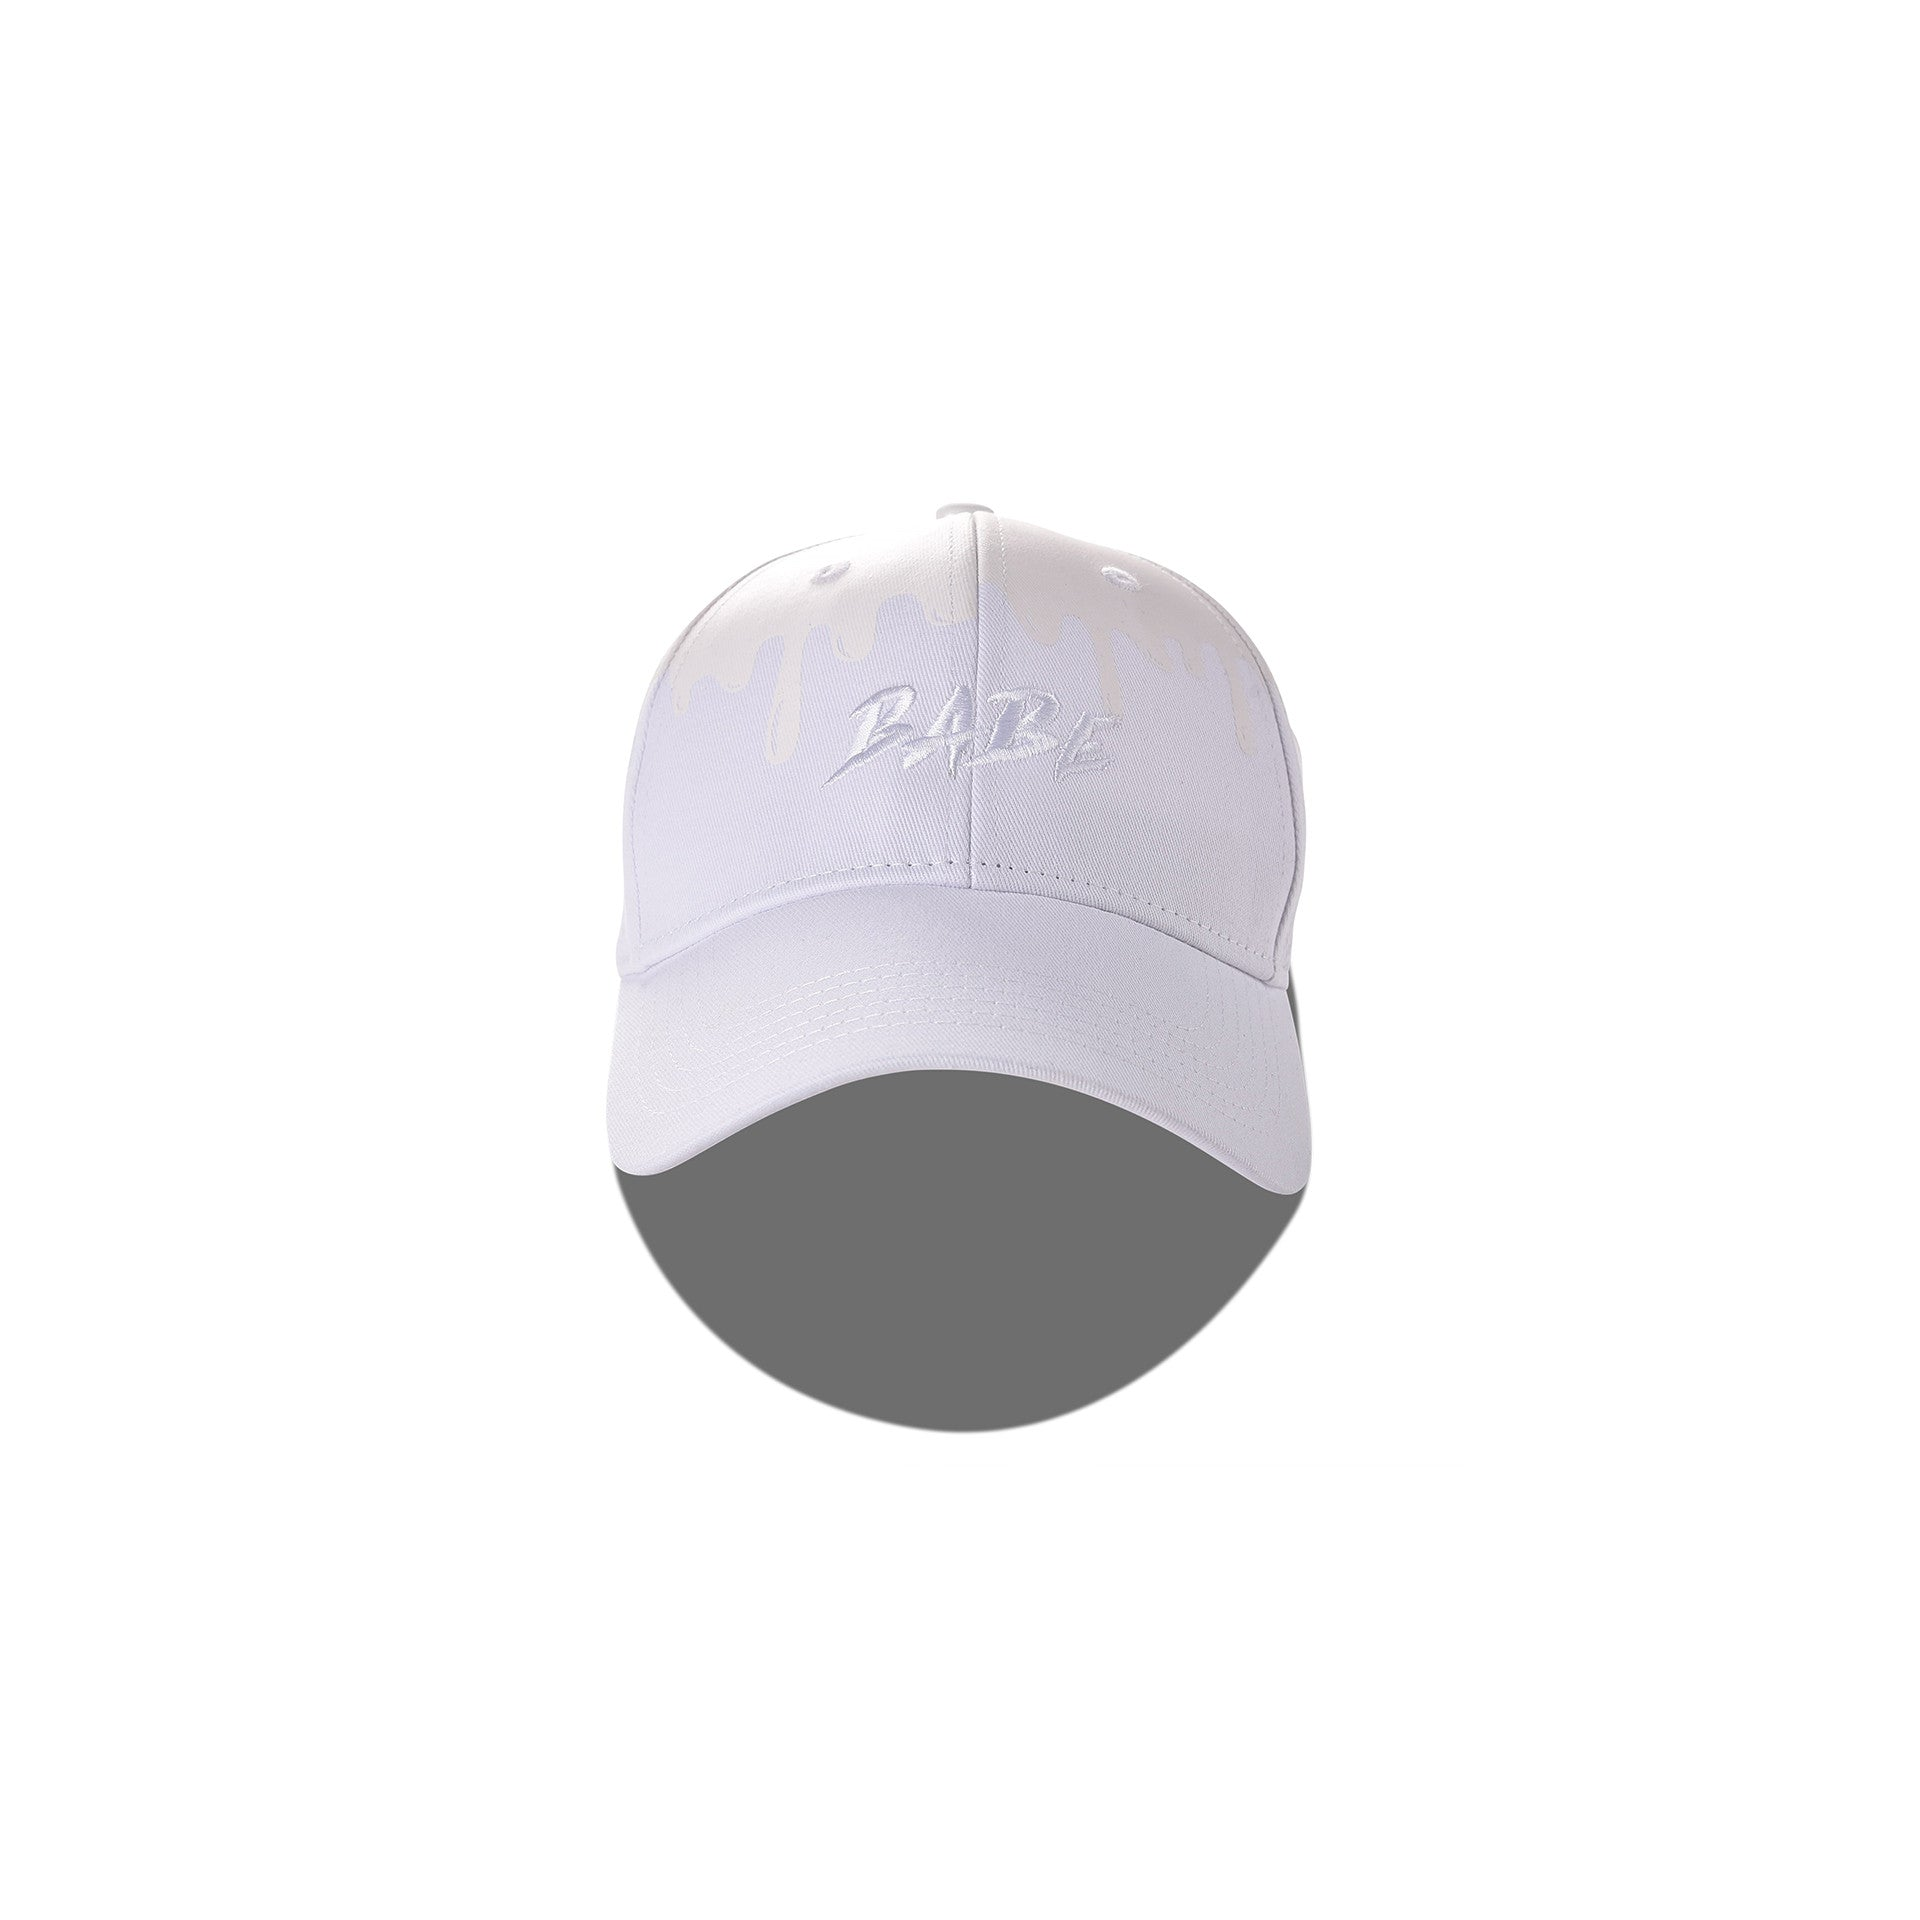 Luna Blanche Fornt of Mood Babe Cap Original